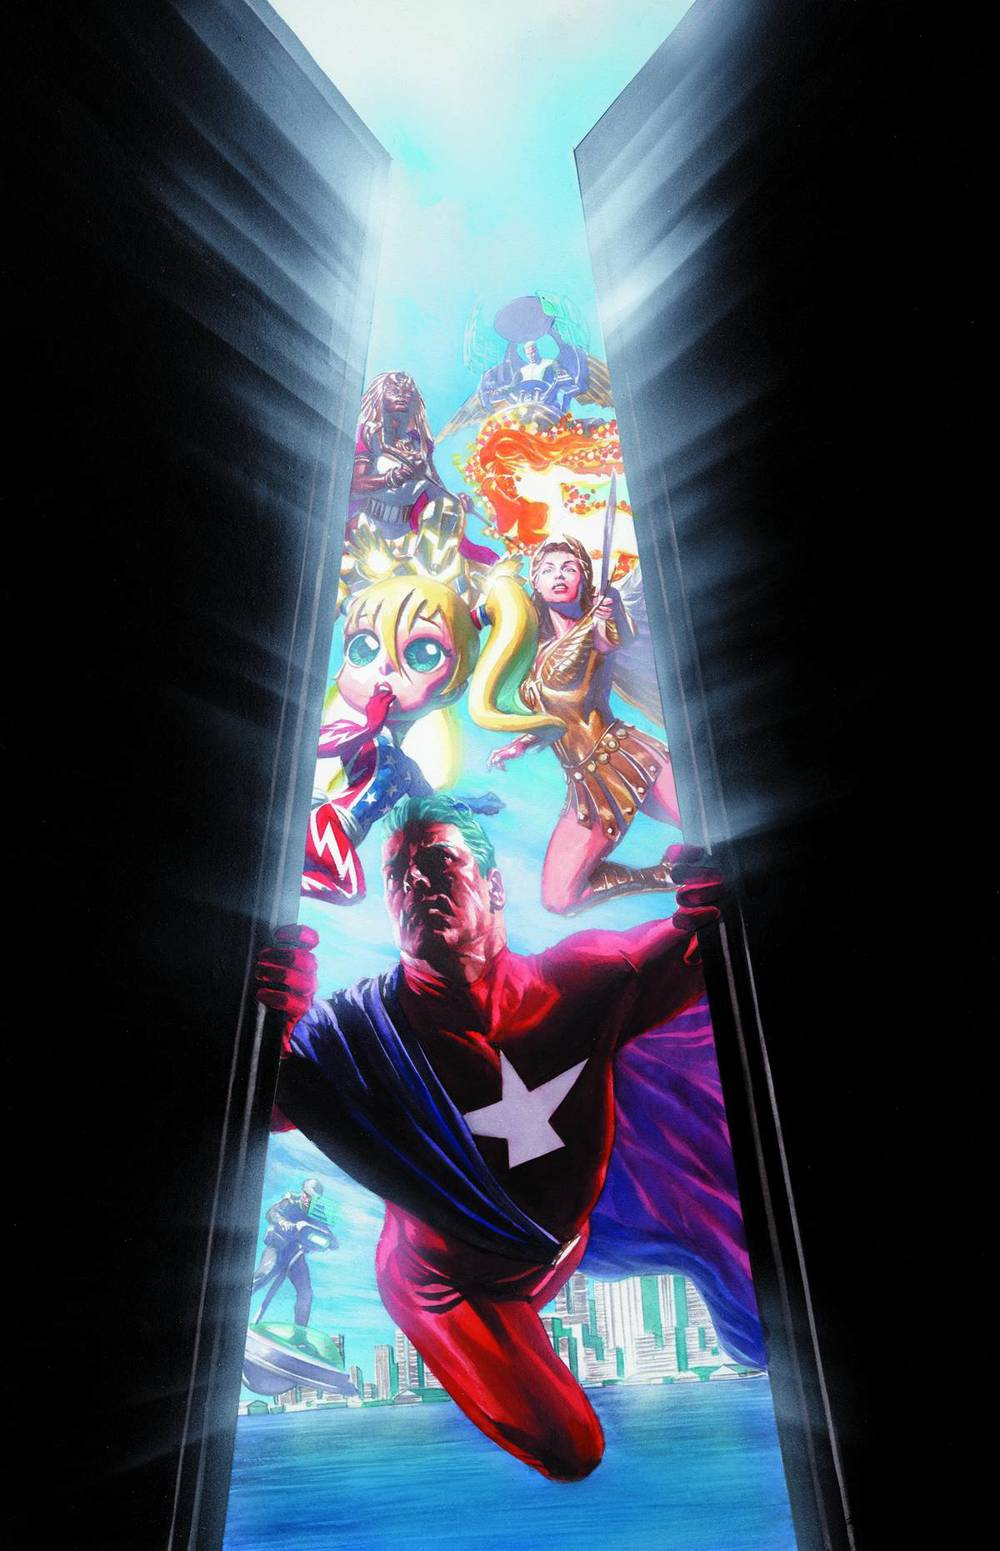 Astro City #1 Cvr A by Alex Ross